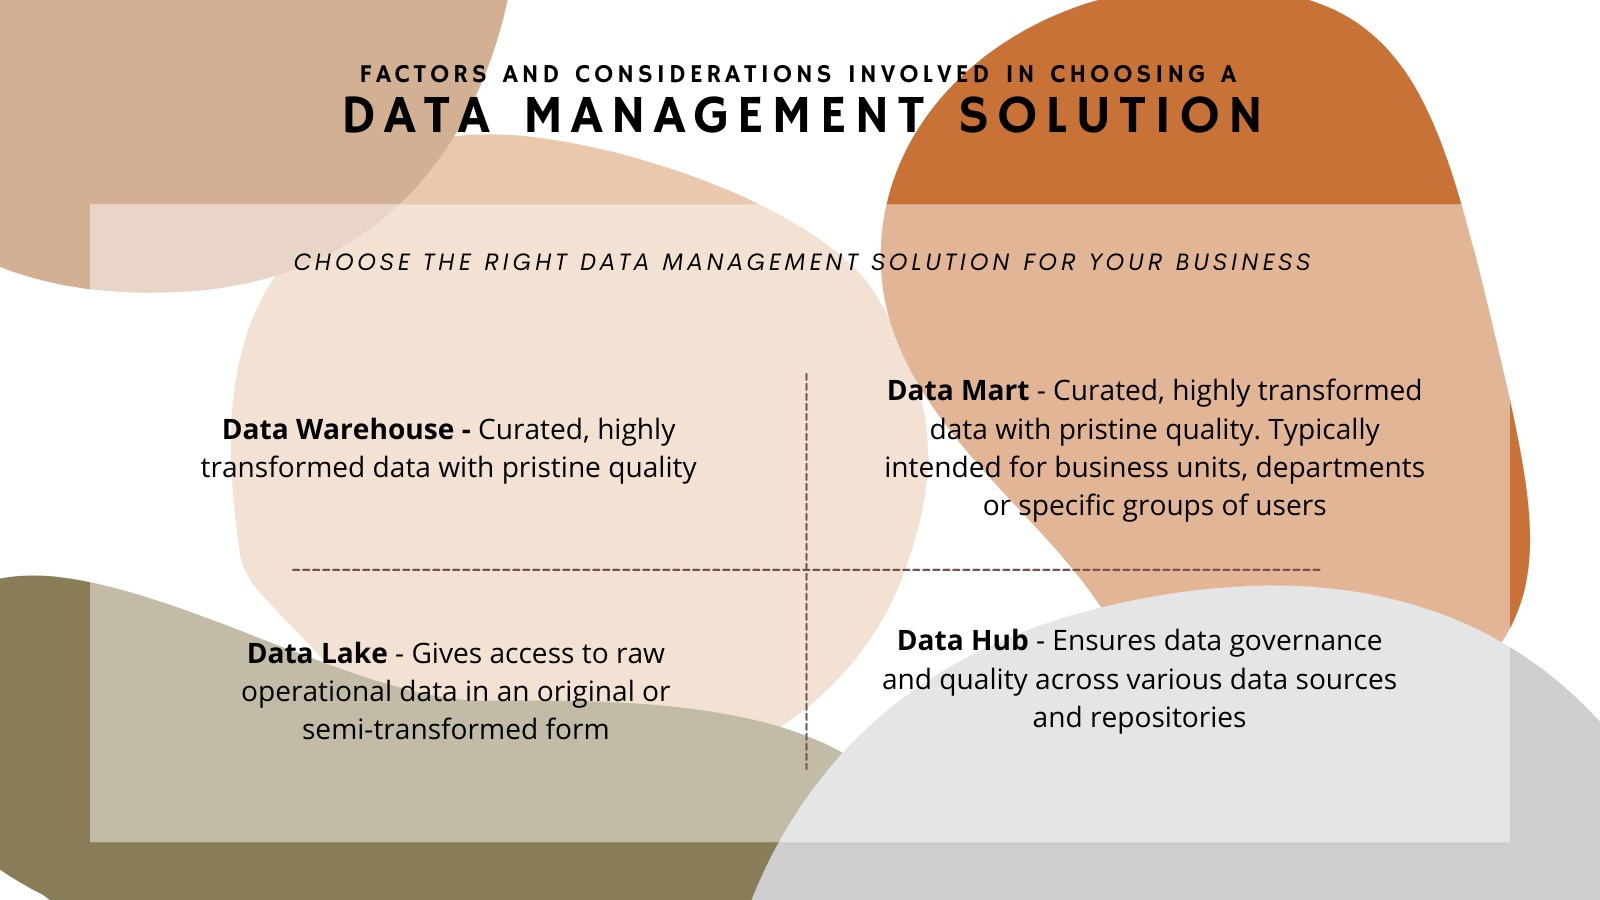 factors-and-considerations-involved-in-choosing-a-data-management-solution-infographic